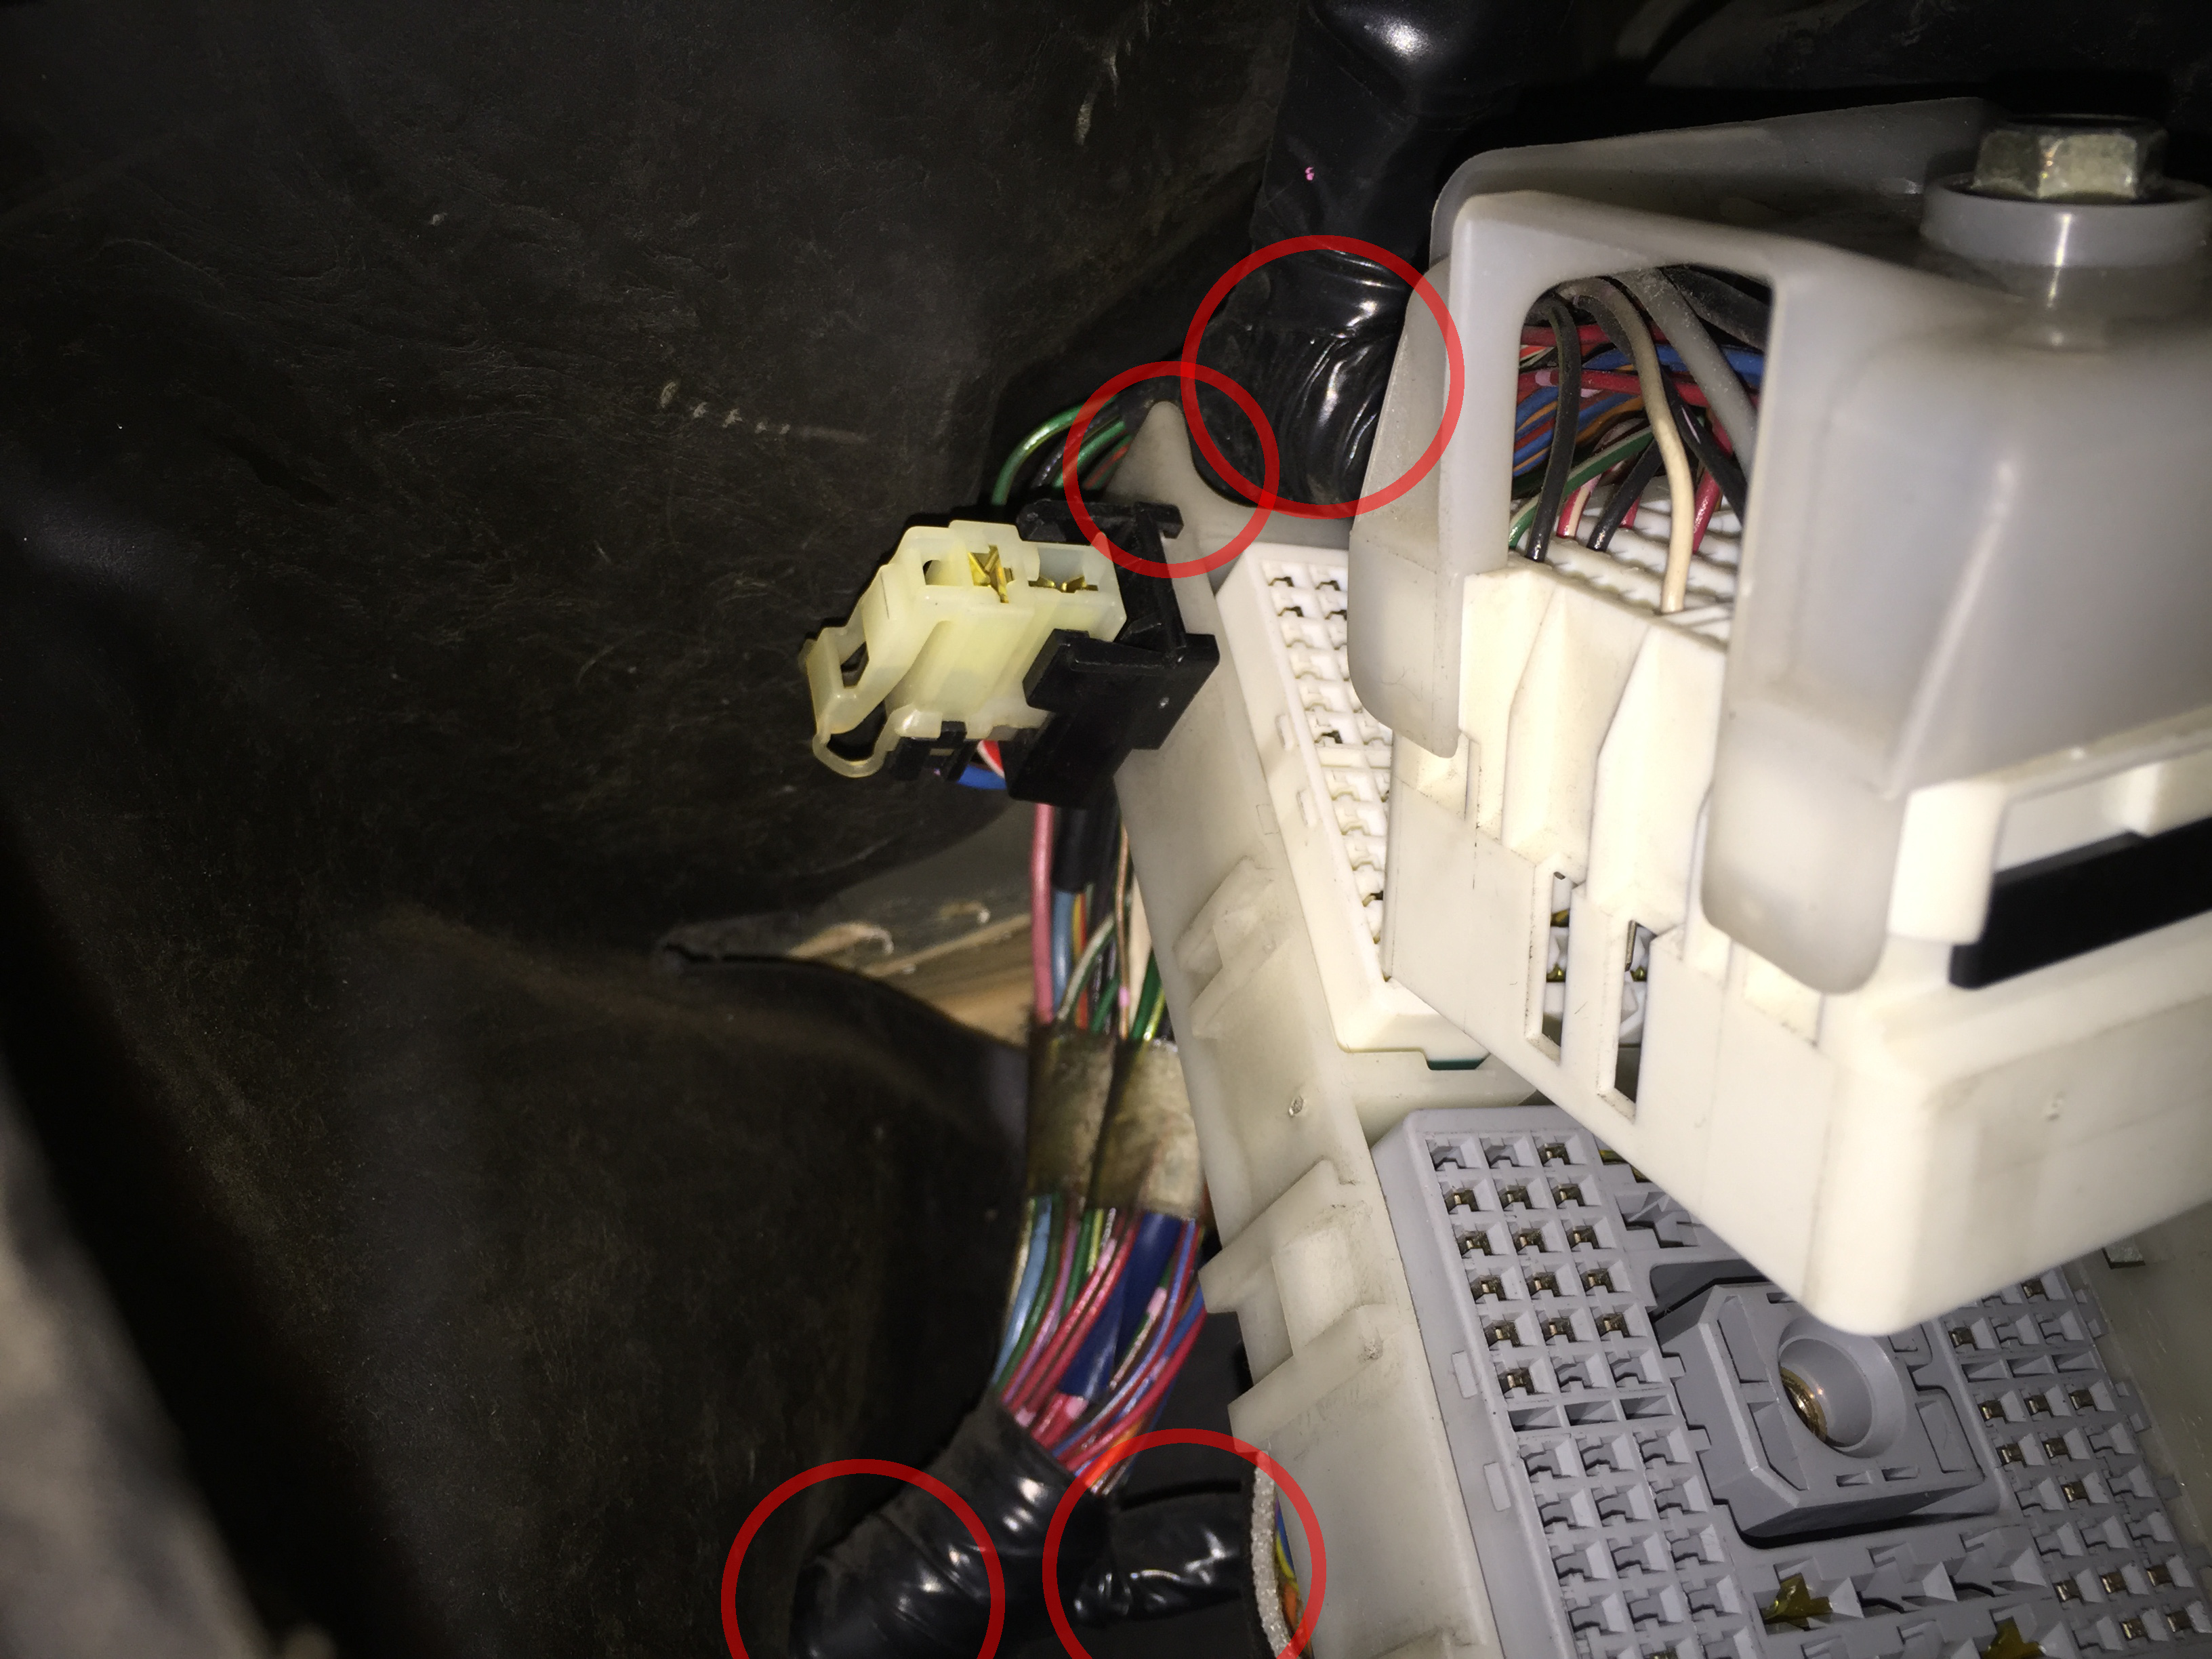 Fuse Box S13 Hatch Wiring Library Diagram Under Dash Harness Relocation 1996 Nissan Silvia Img 5159